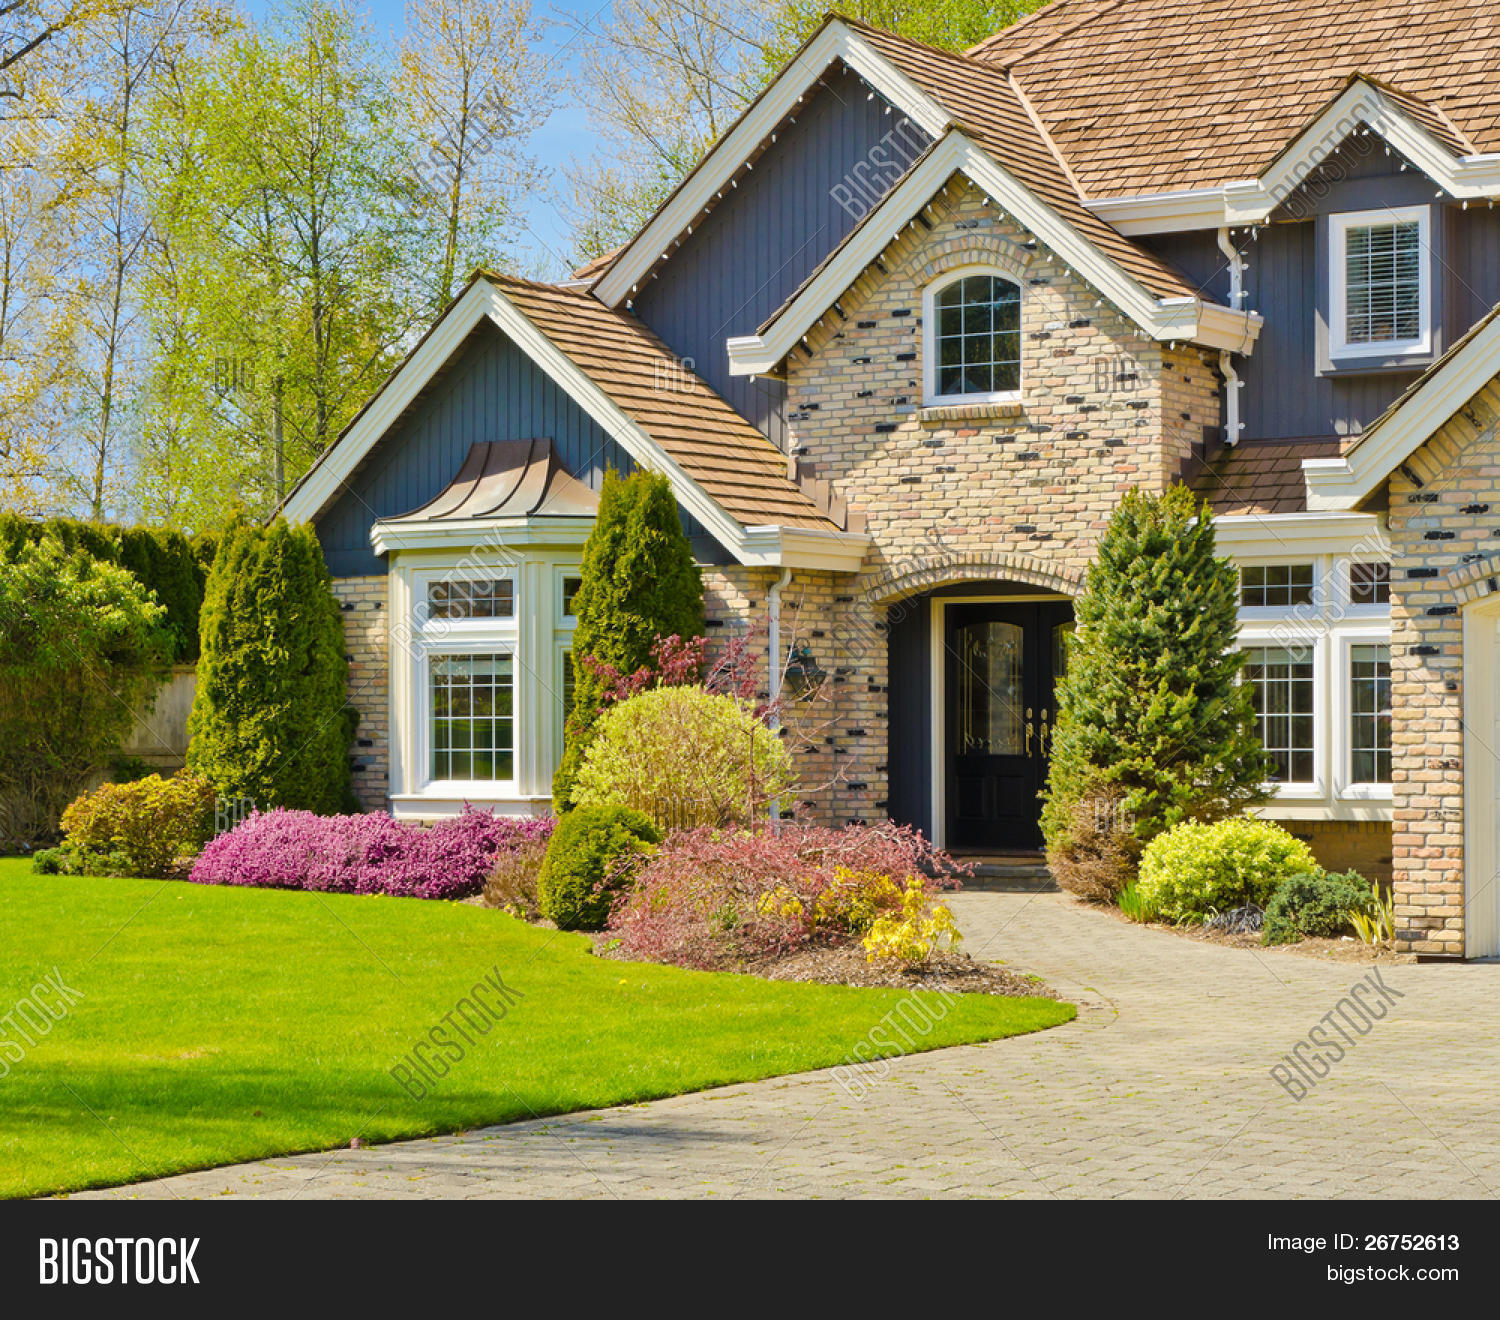 fragment nice house vancouver image photo bigstock